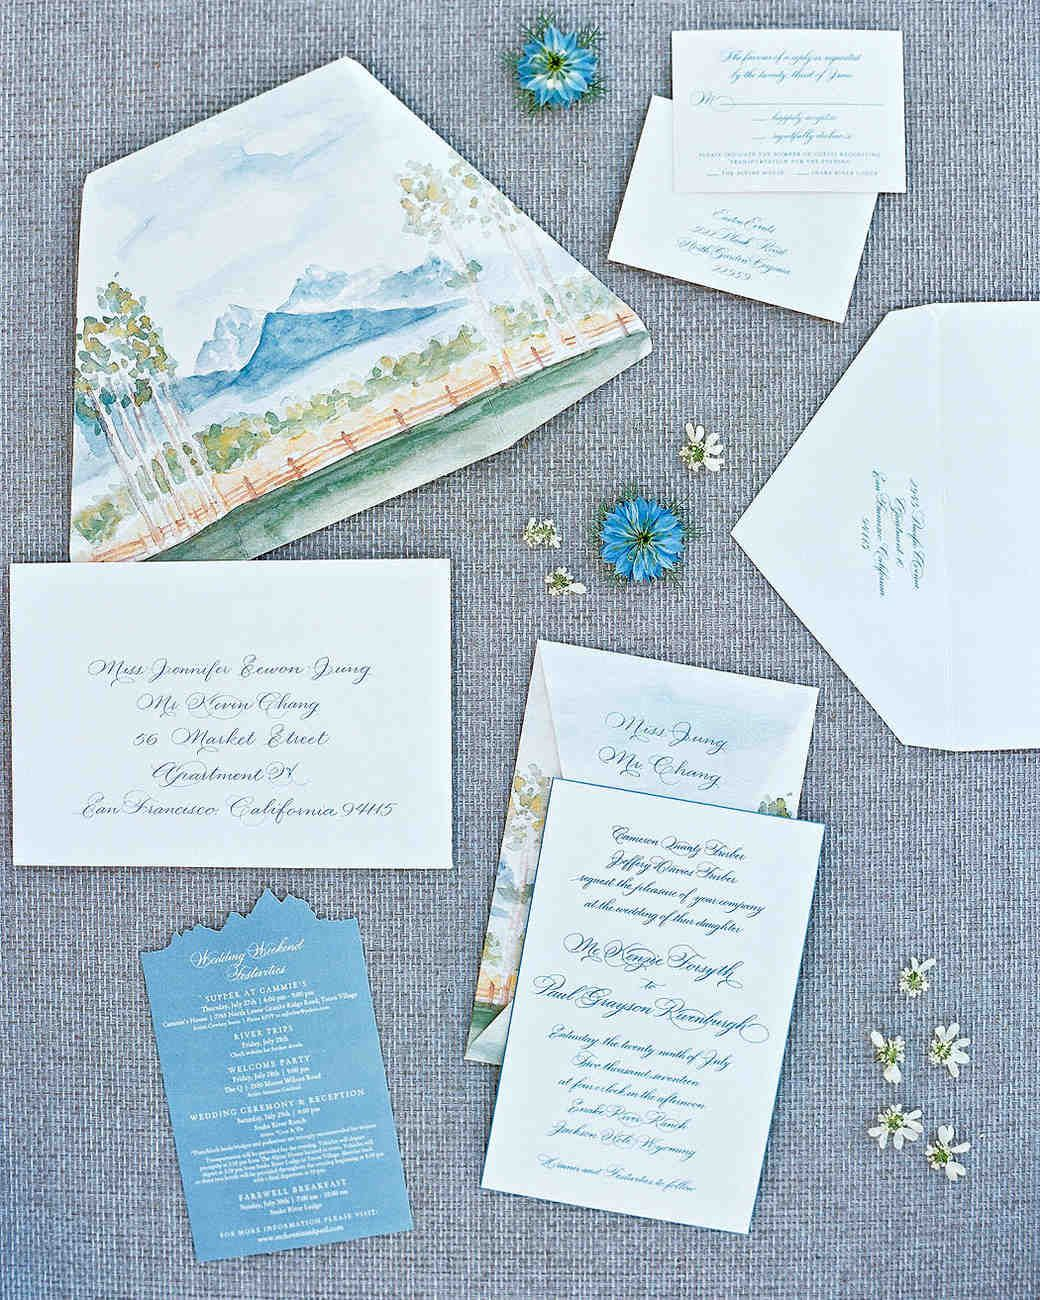 29 Ideas for Unique Wedding Invitations | Wedding Details